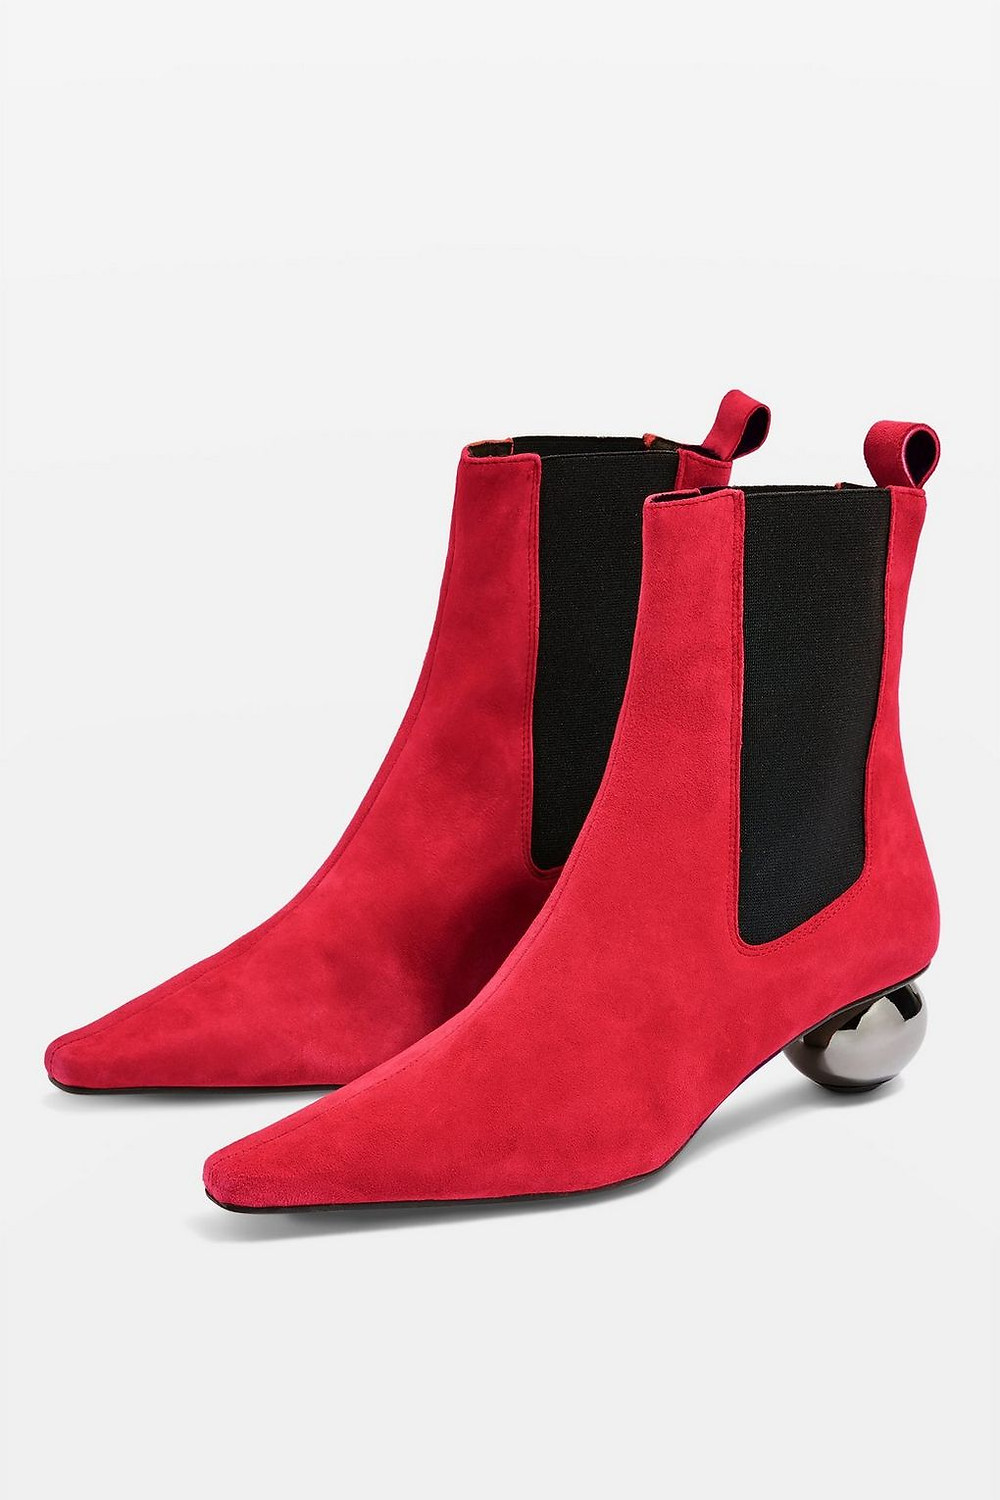 MAGICIAN Ankle Boots $150